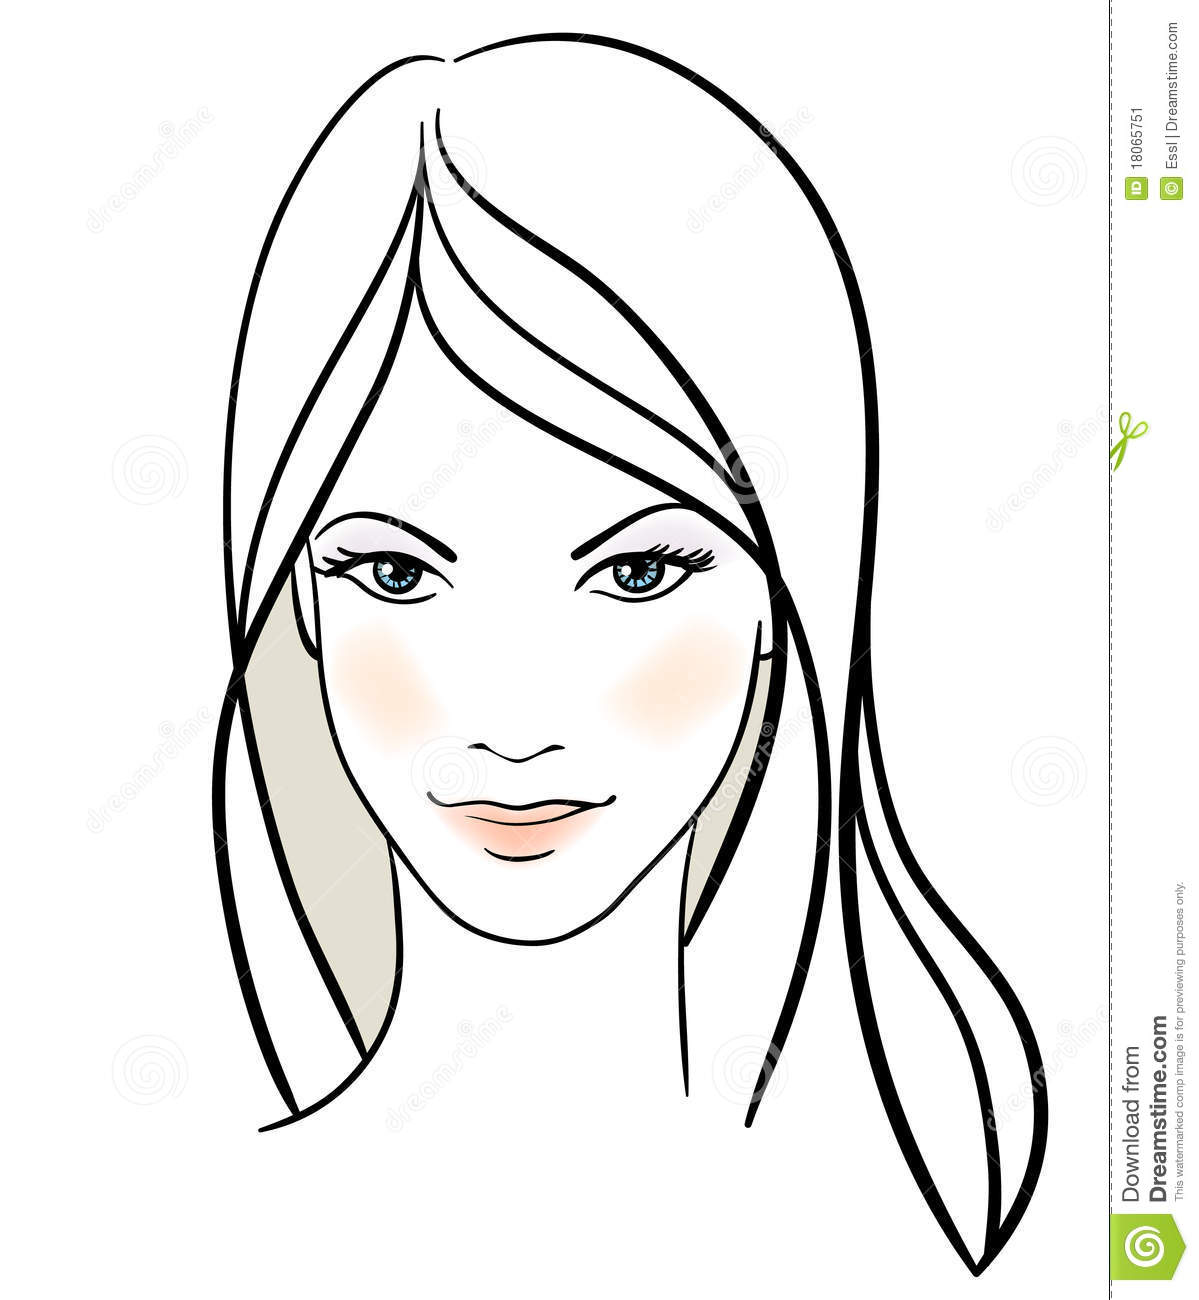 1199x1300 Adult Girl Face Coloring Page Girl Face Coloring Sheet Boy Girl